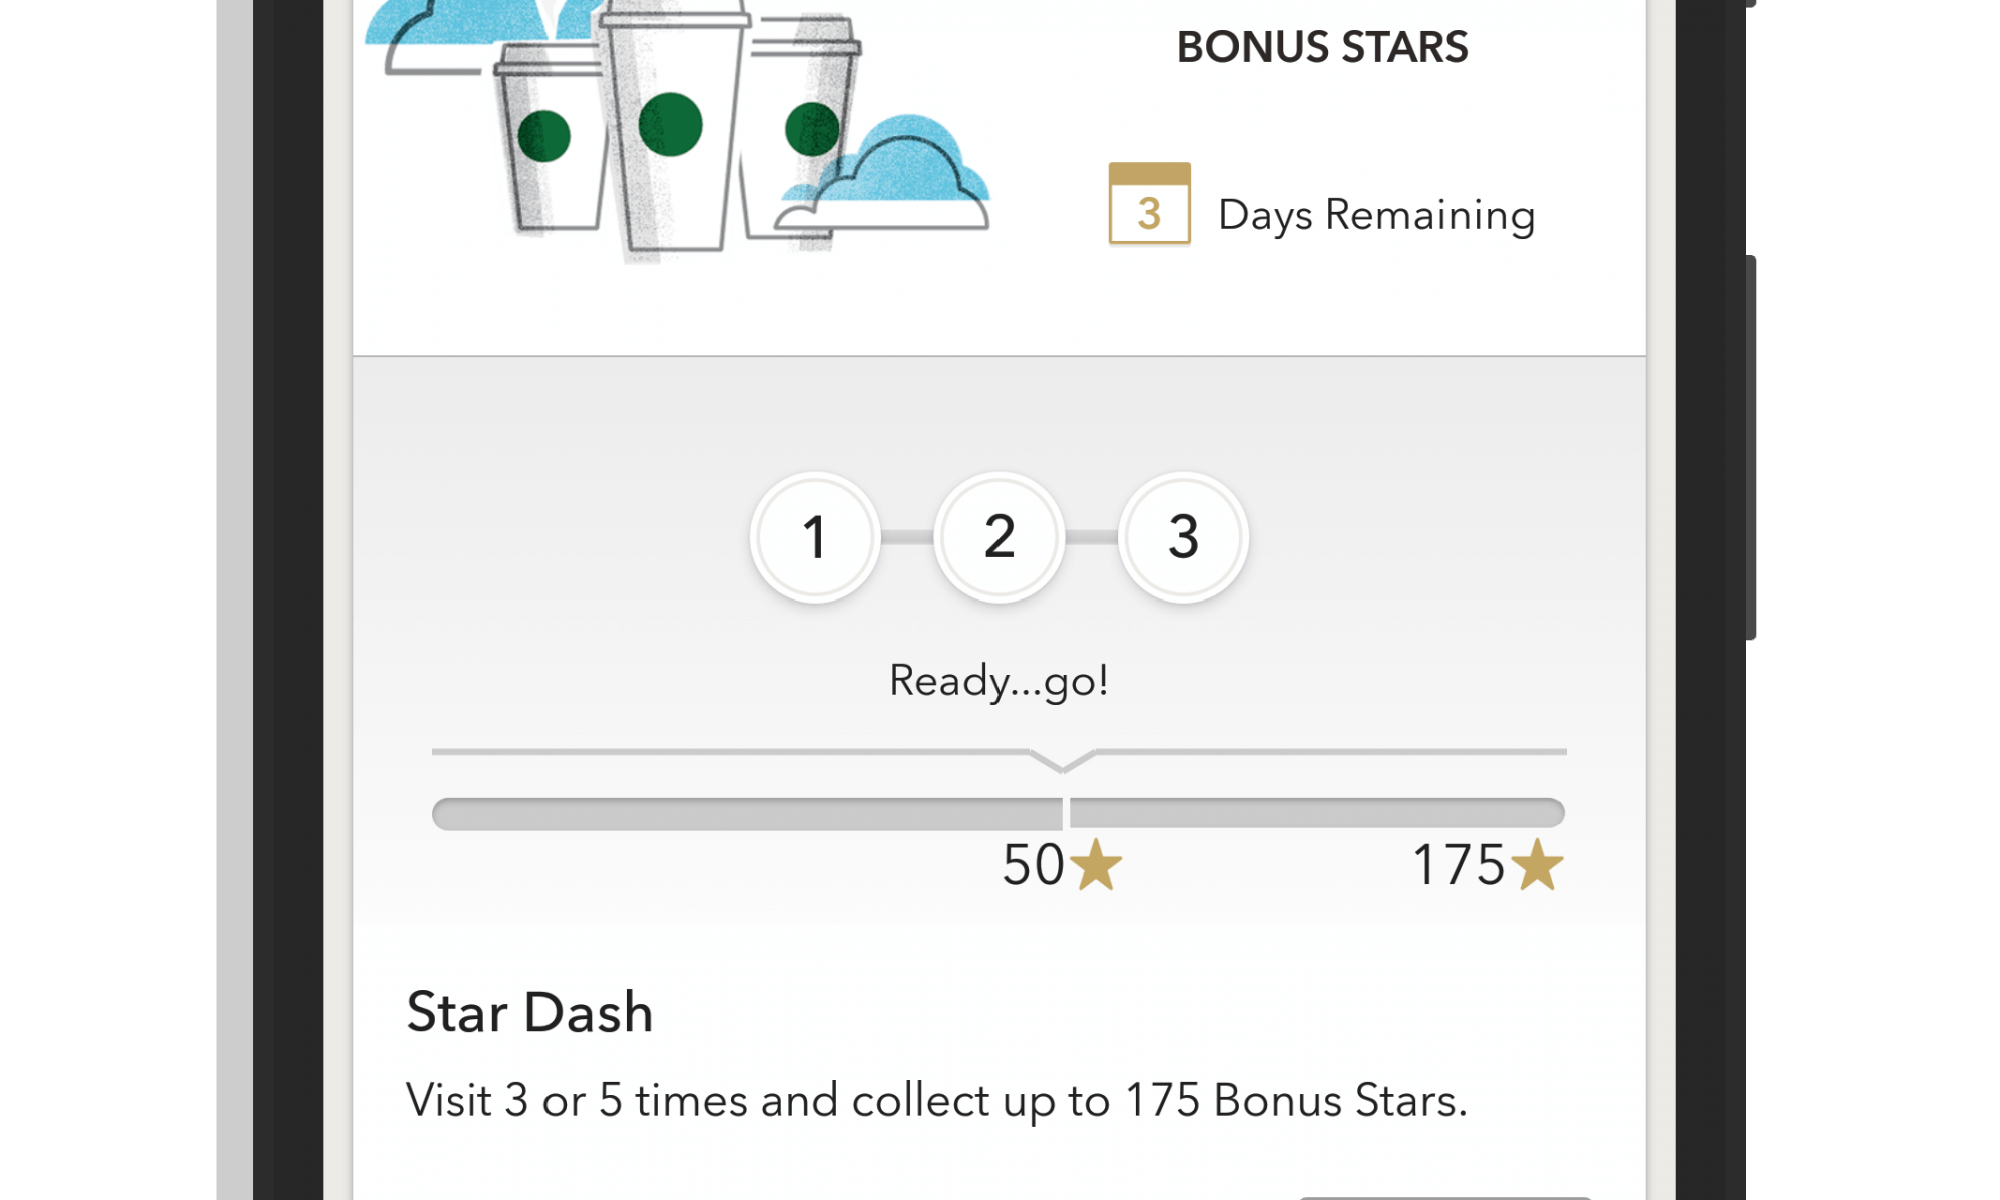 Starbucks App for Android